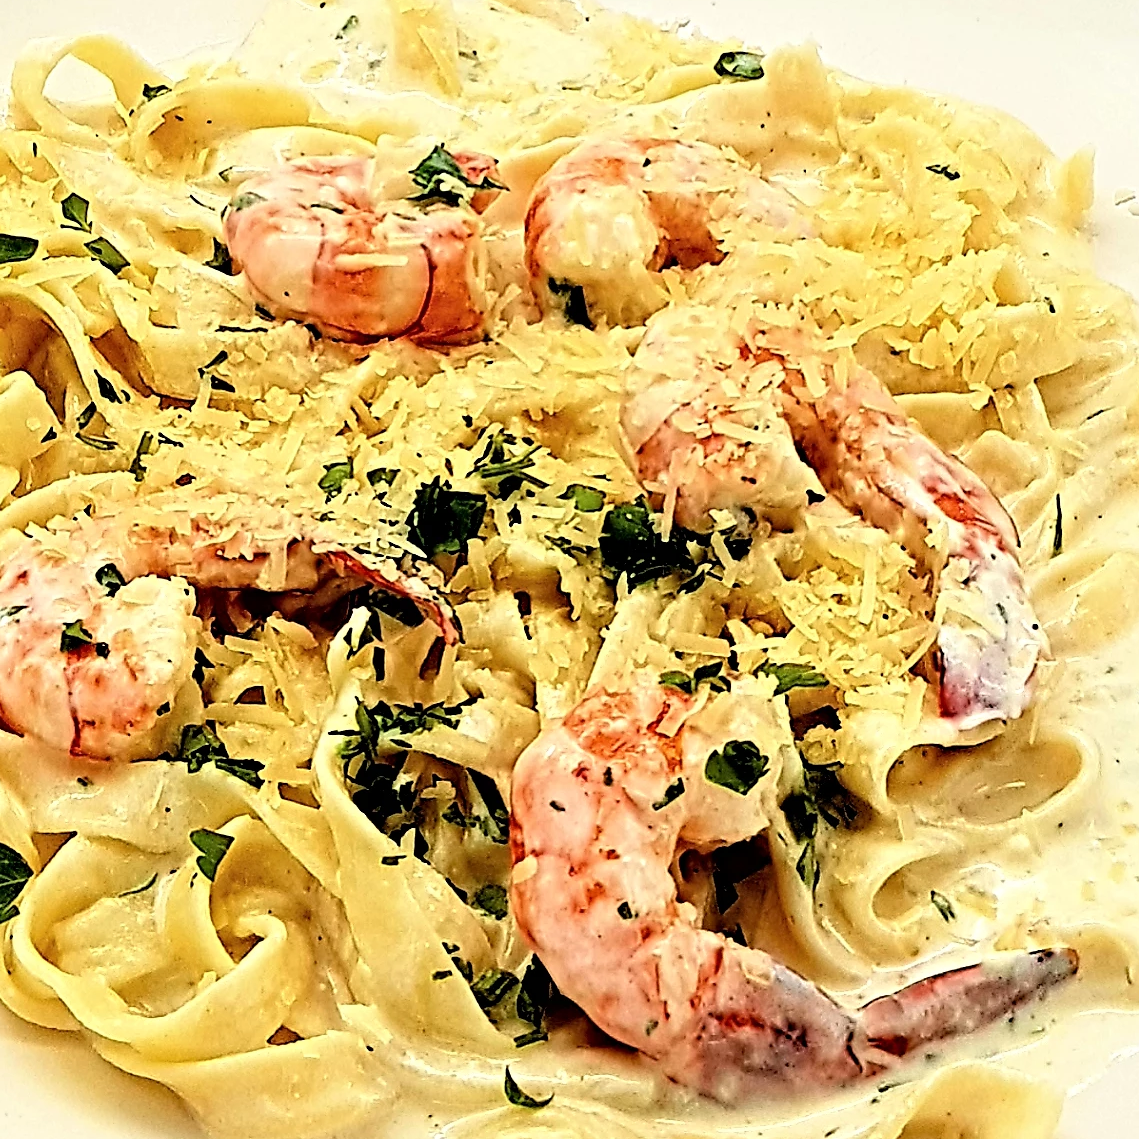 Familychef 20 ' Fresh Fettuccine Alfredo With Shrimp plate